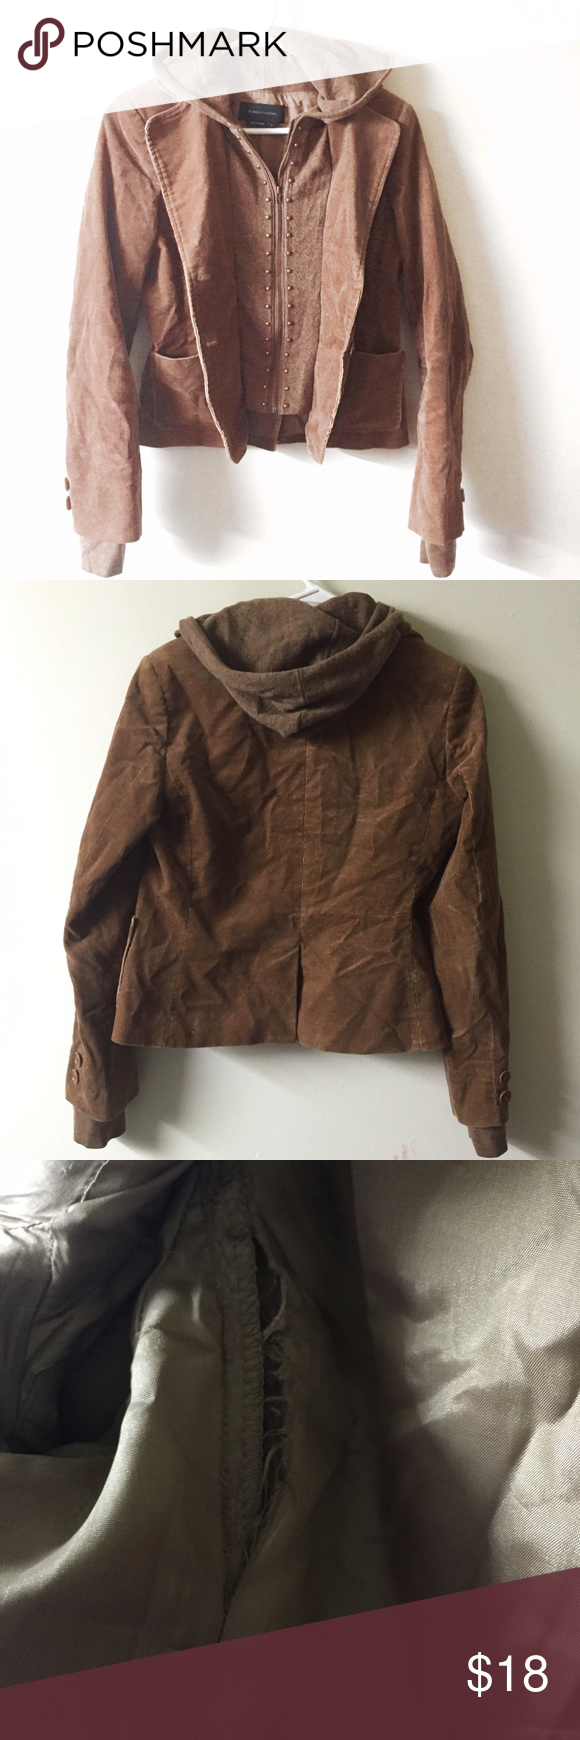 BcbgMaxazria brown 2 in 1 cashmere wool jacket Has one flaw as pictured in the inside armpit BCBGMaxAzria Jackets & Coats